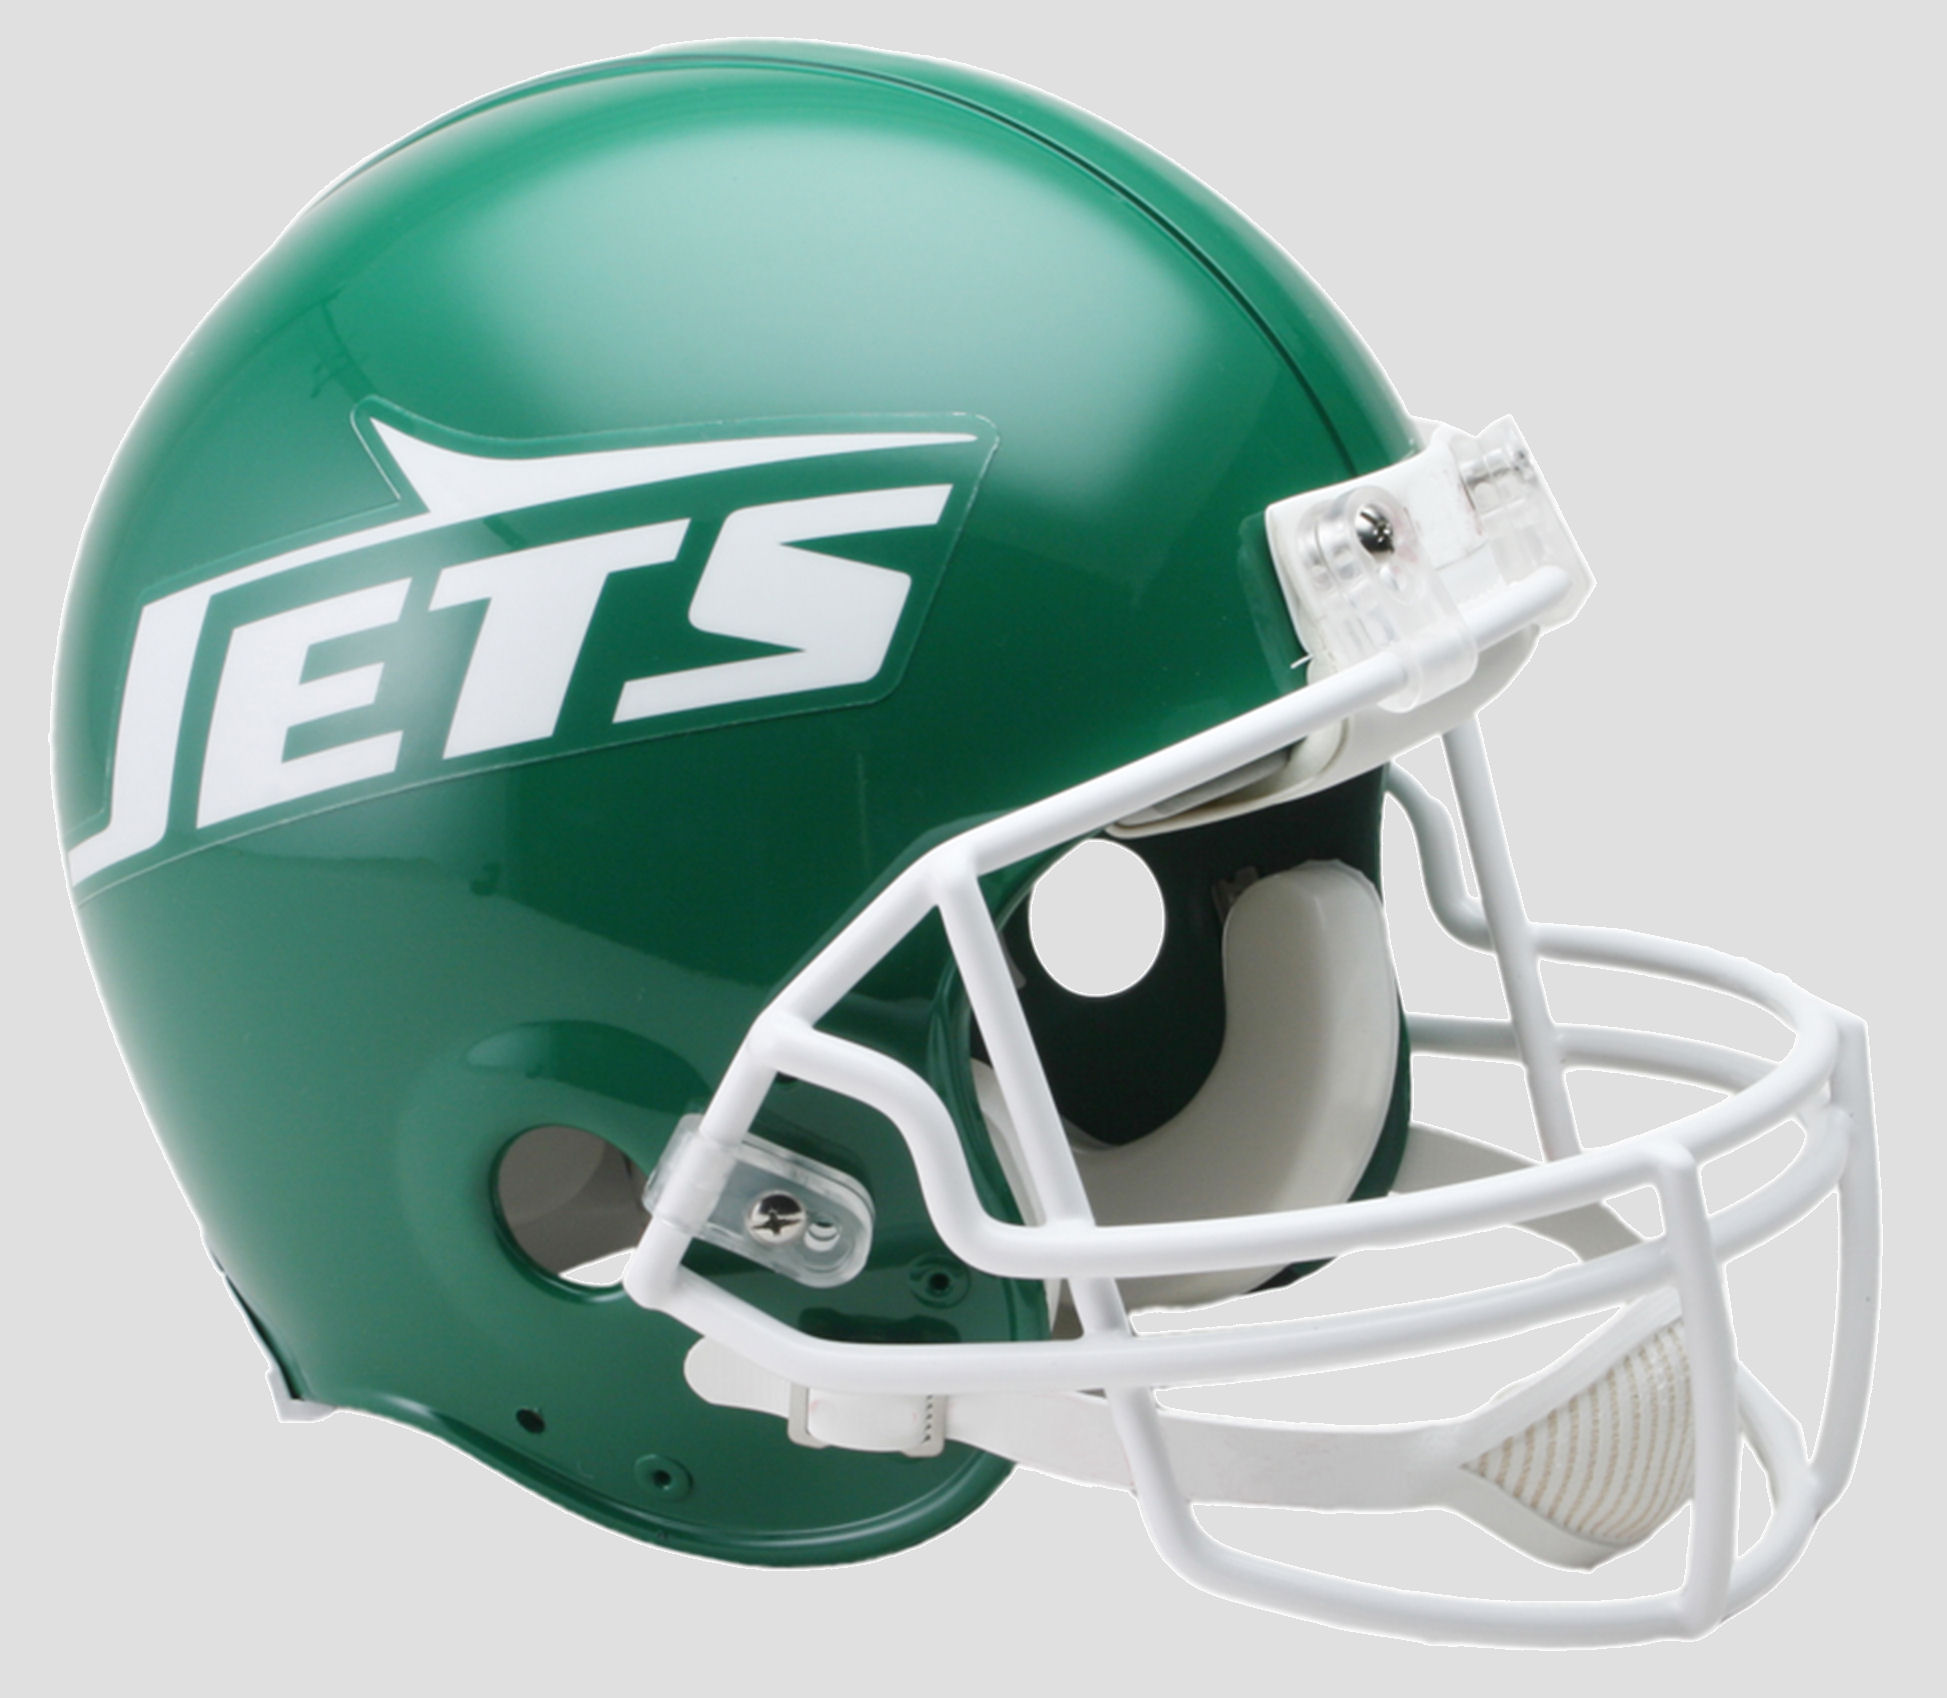 New York Jets 1978 to 1989 Football Helmet